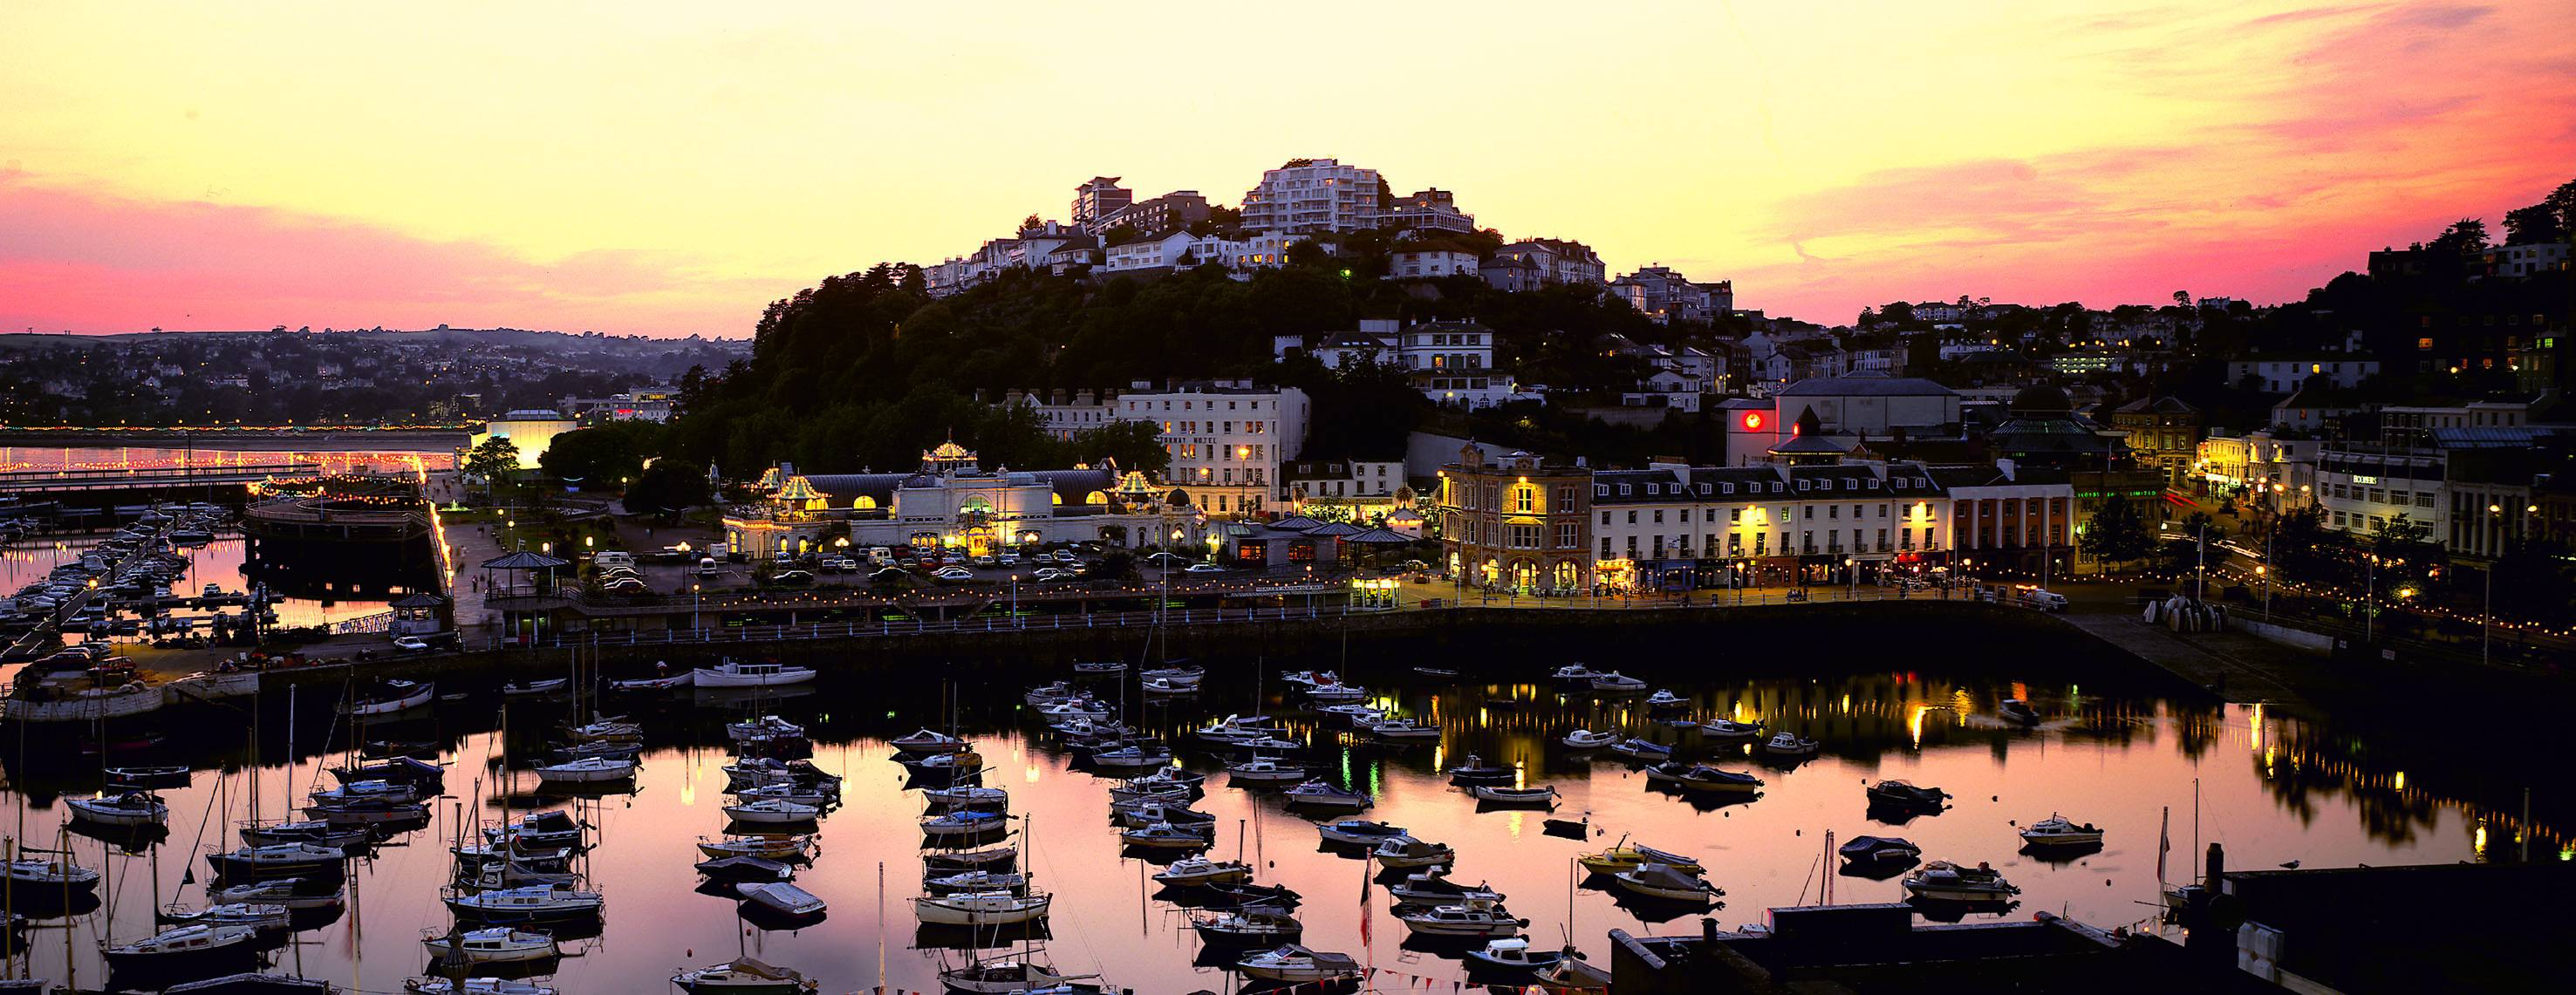 View of Torquay harbour at dusk